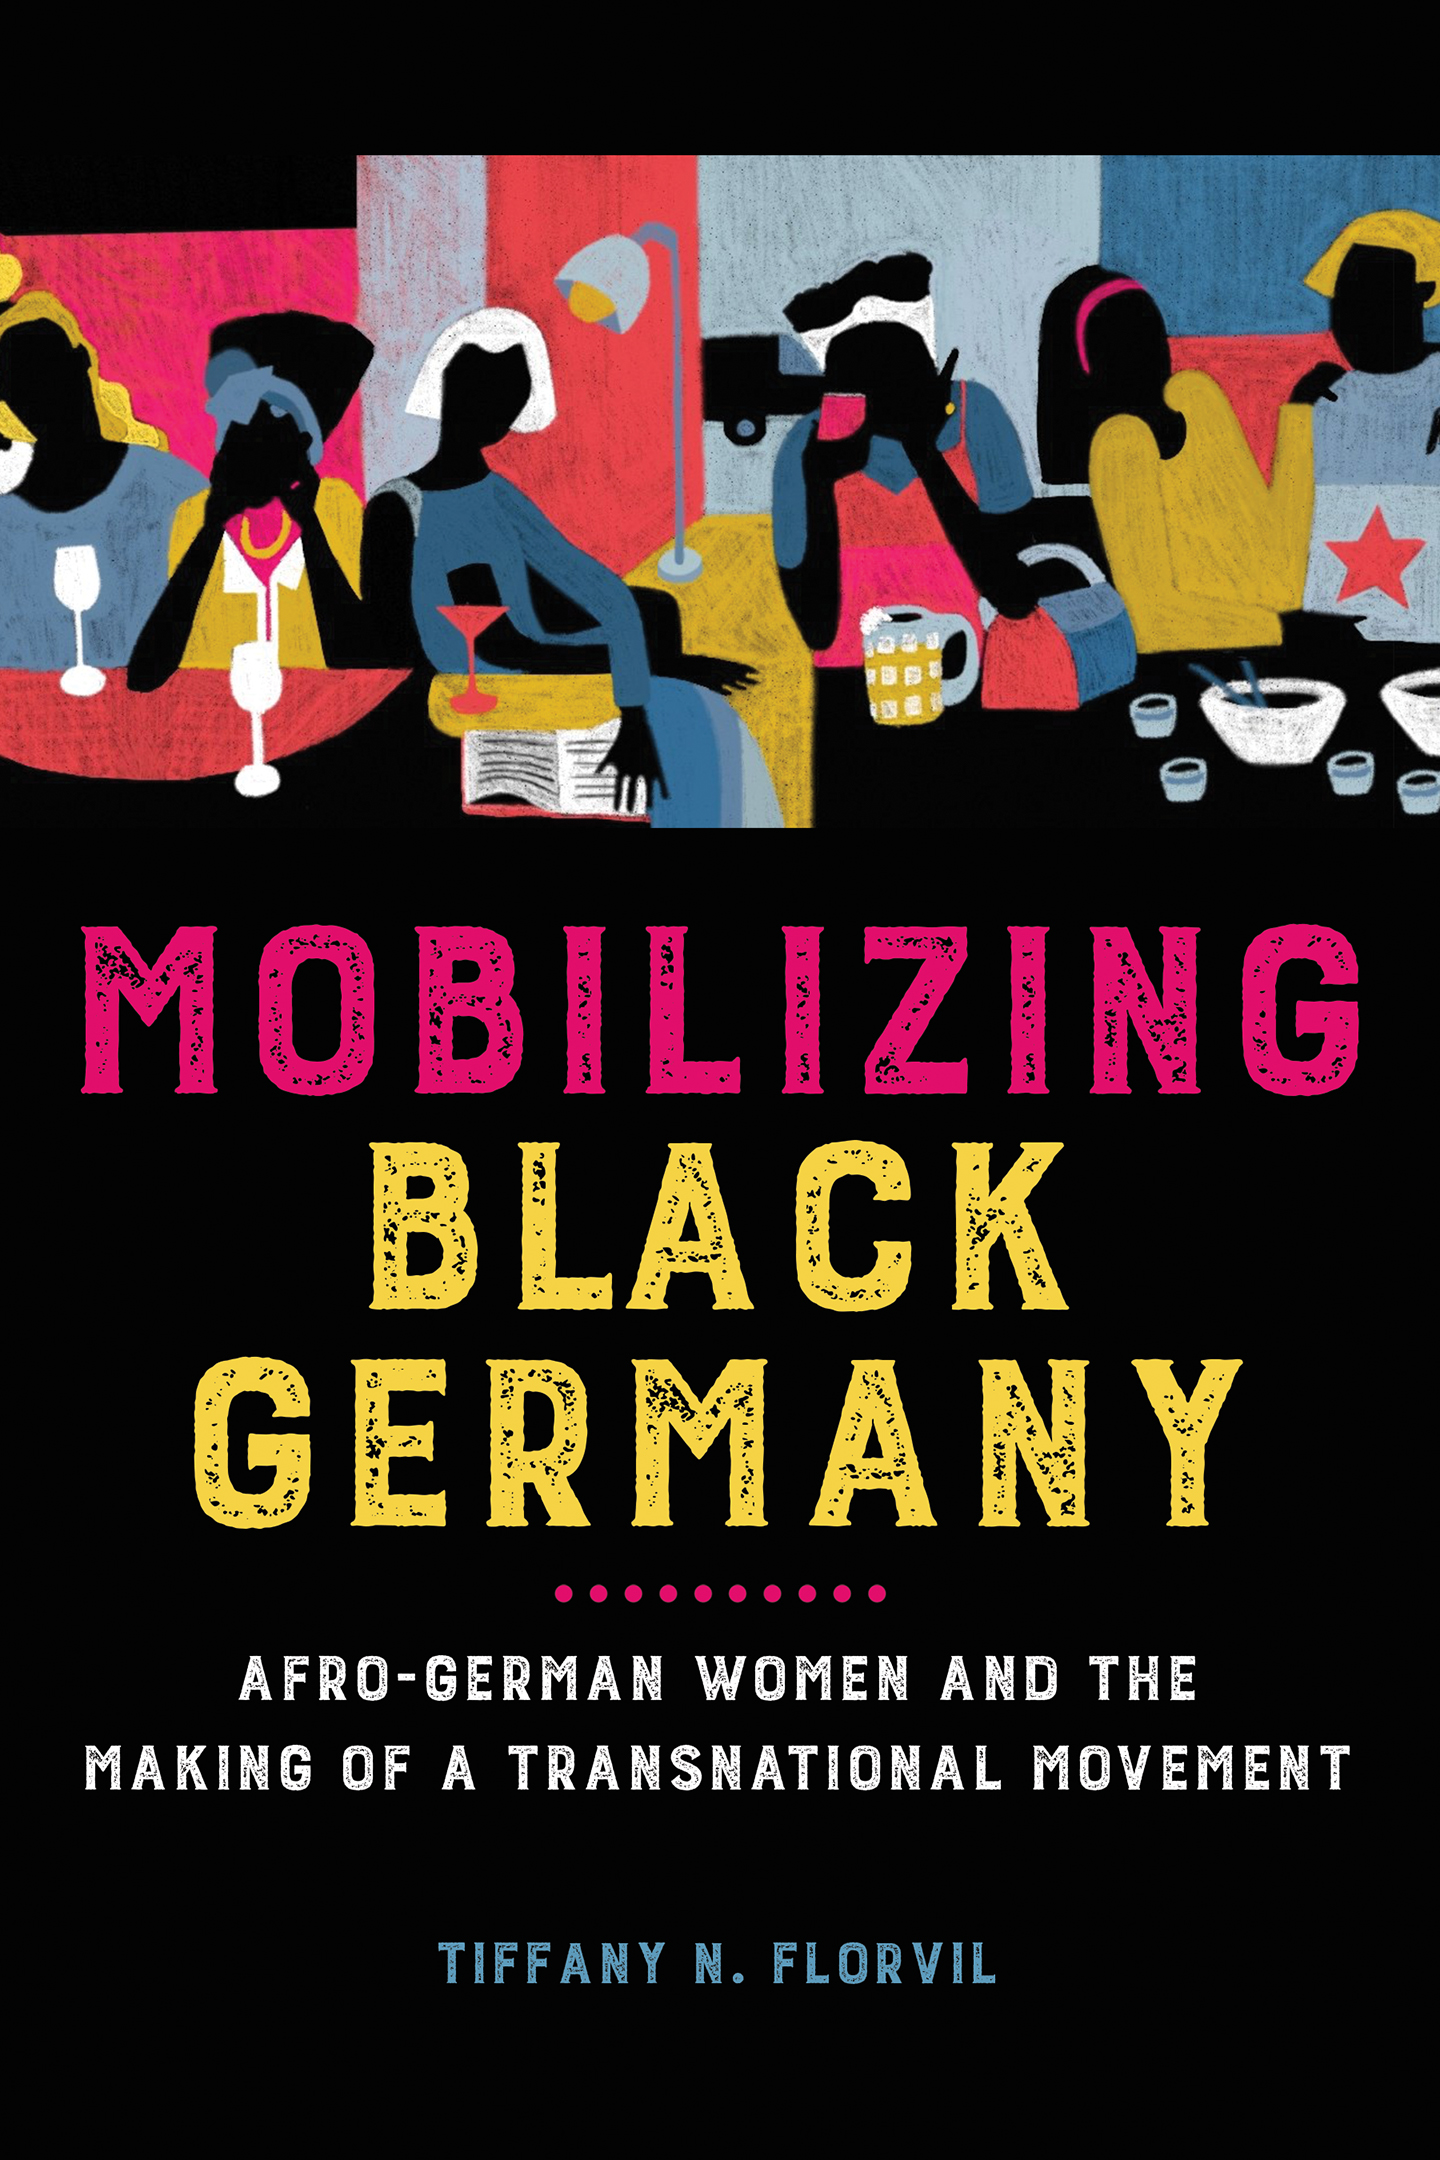 Mobilizing Black Germany: Afro-German Women and the Making of a Transnational Movement